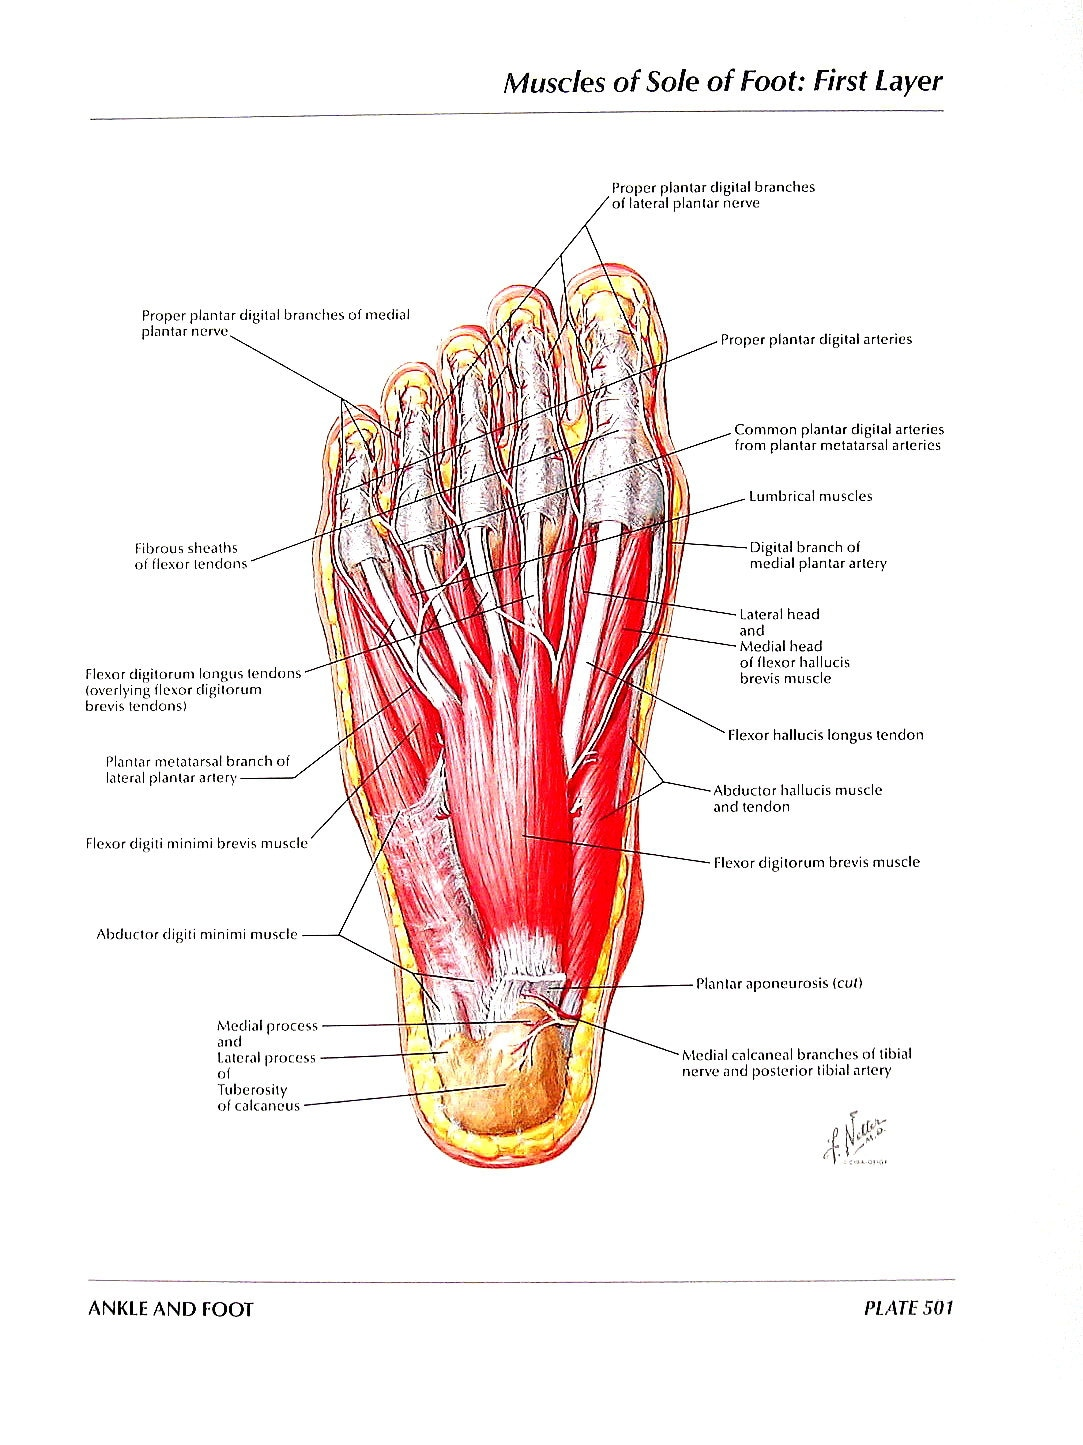 Anatomy Print Muscles of the Sole of the Foot First and